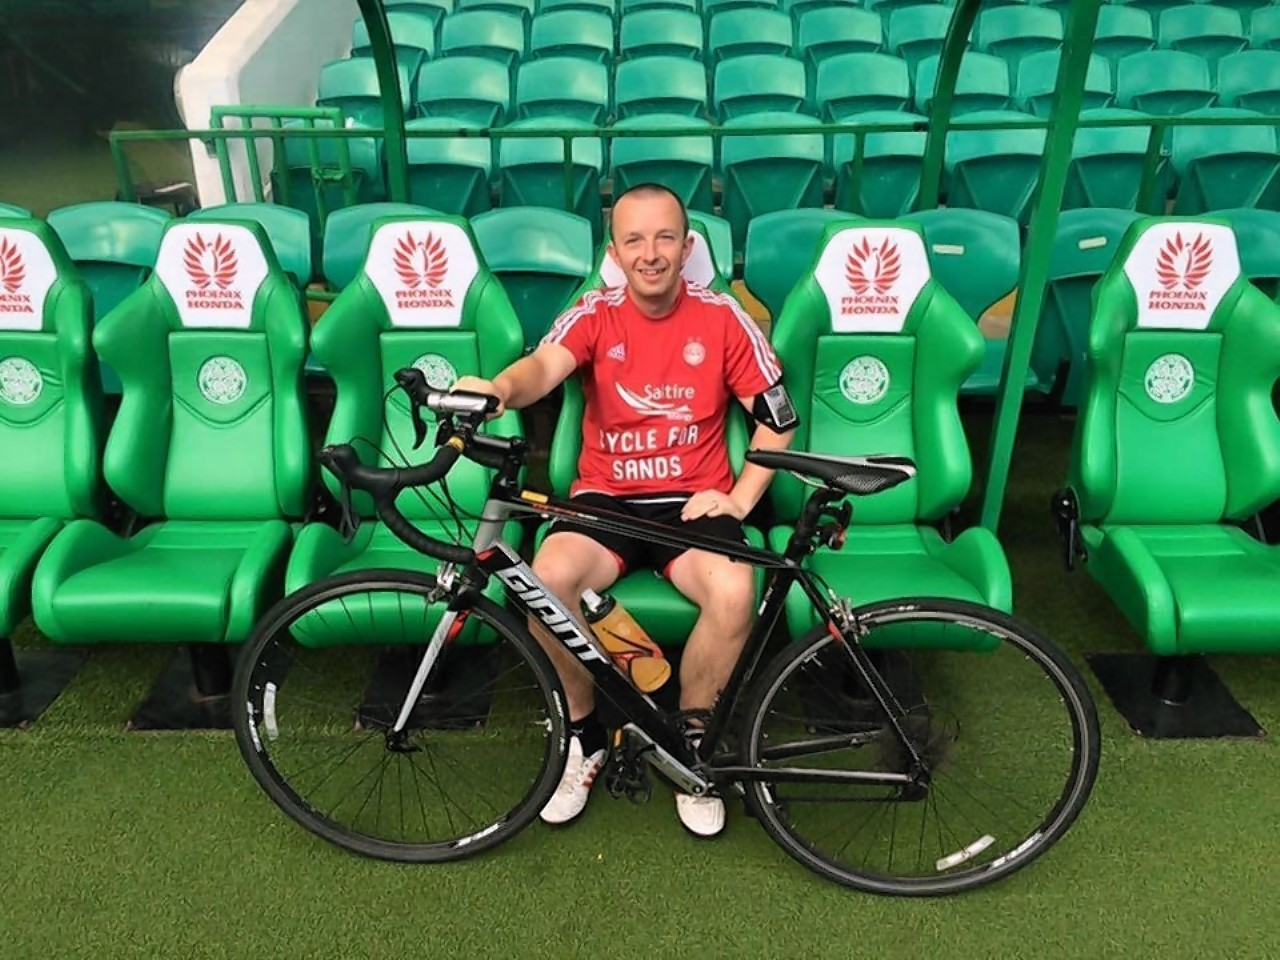 Martin Bagshaw cycled round 15 football stadiums across Scotland